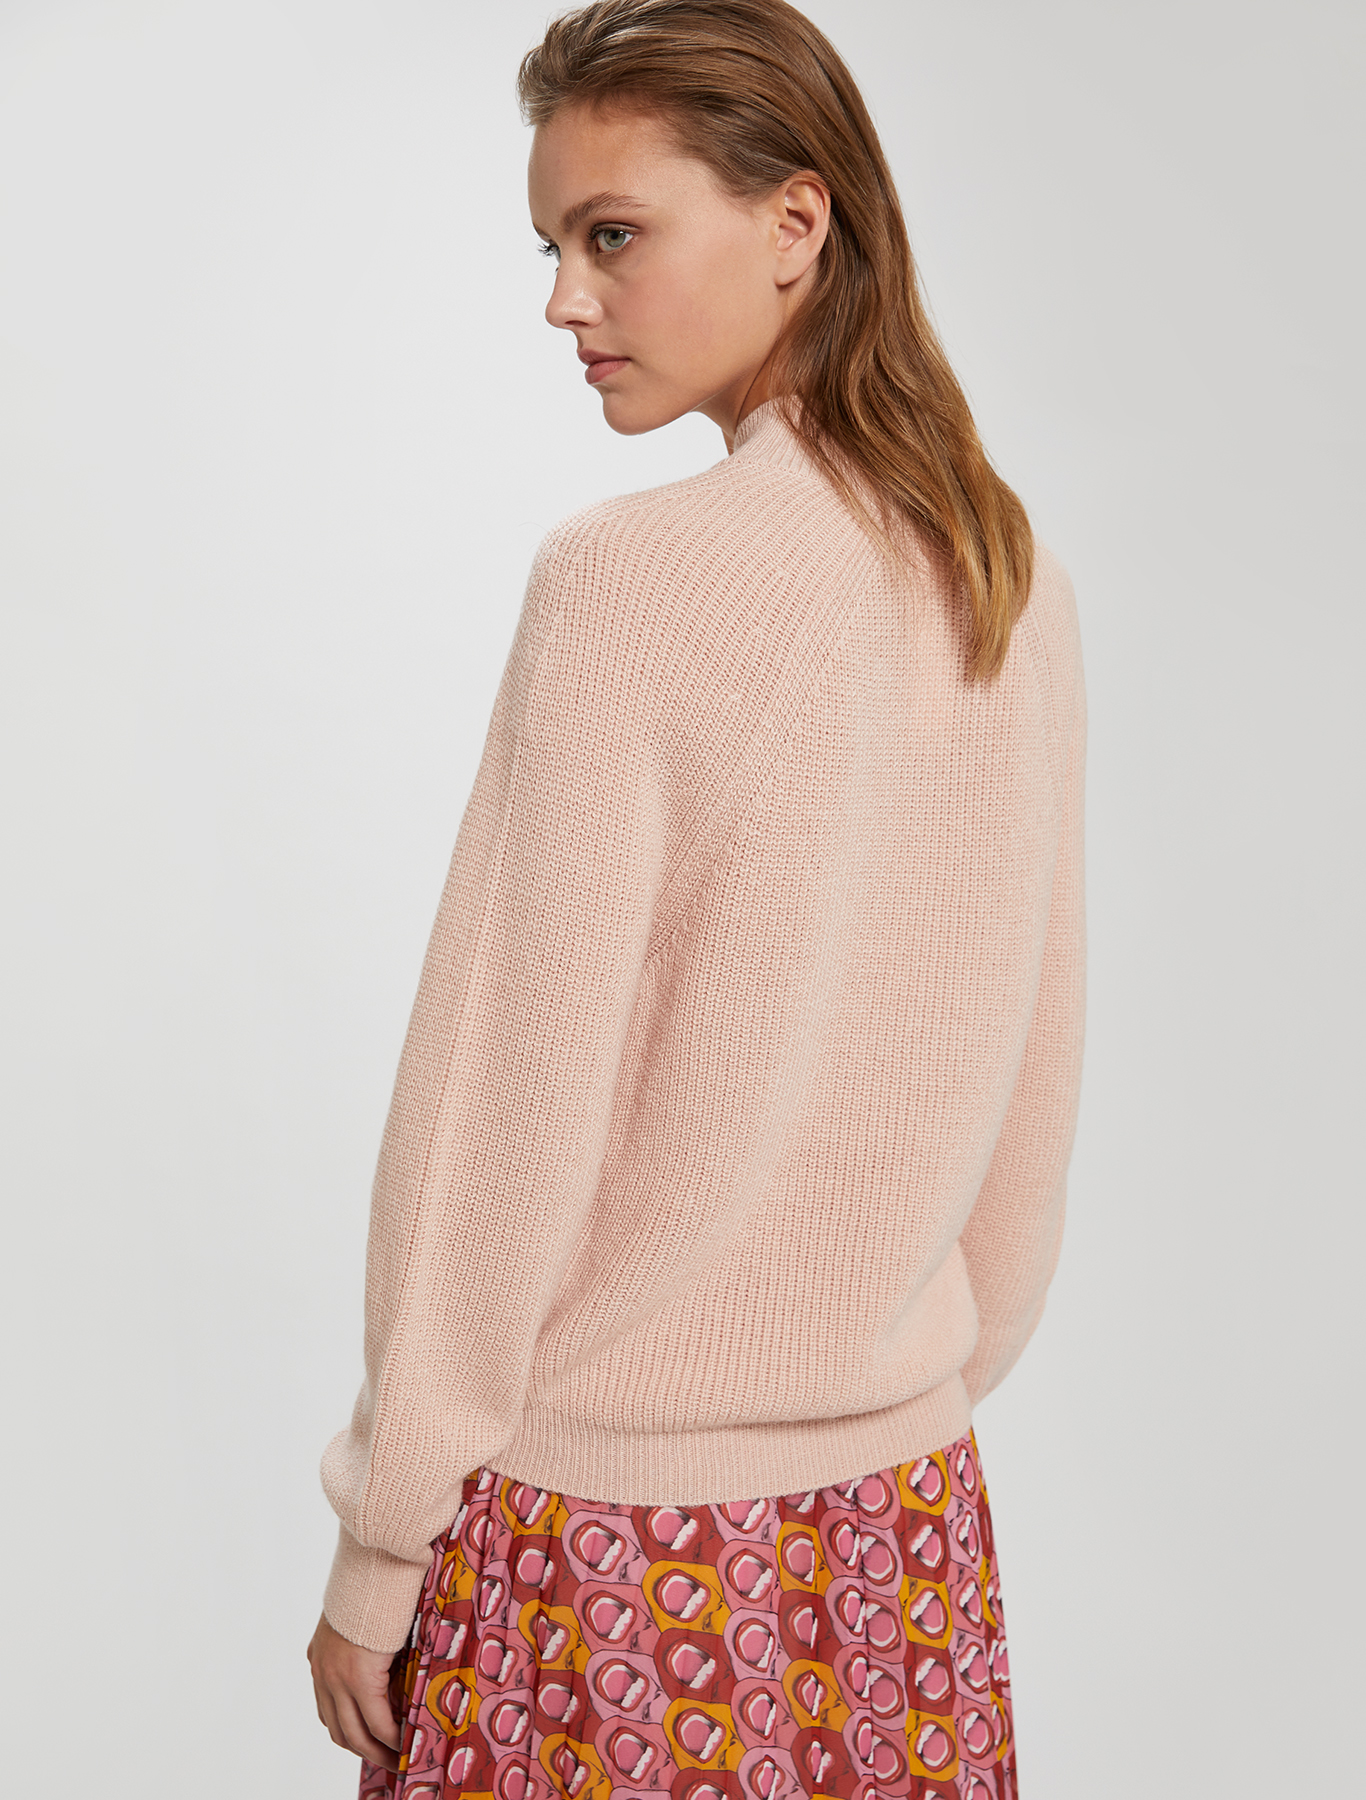 Electric Feel by Spiros Halaris embroidered jumper - pink - pennyblack